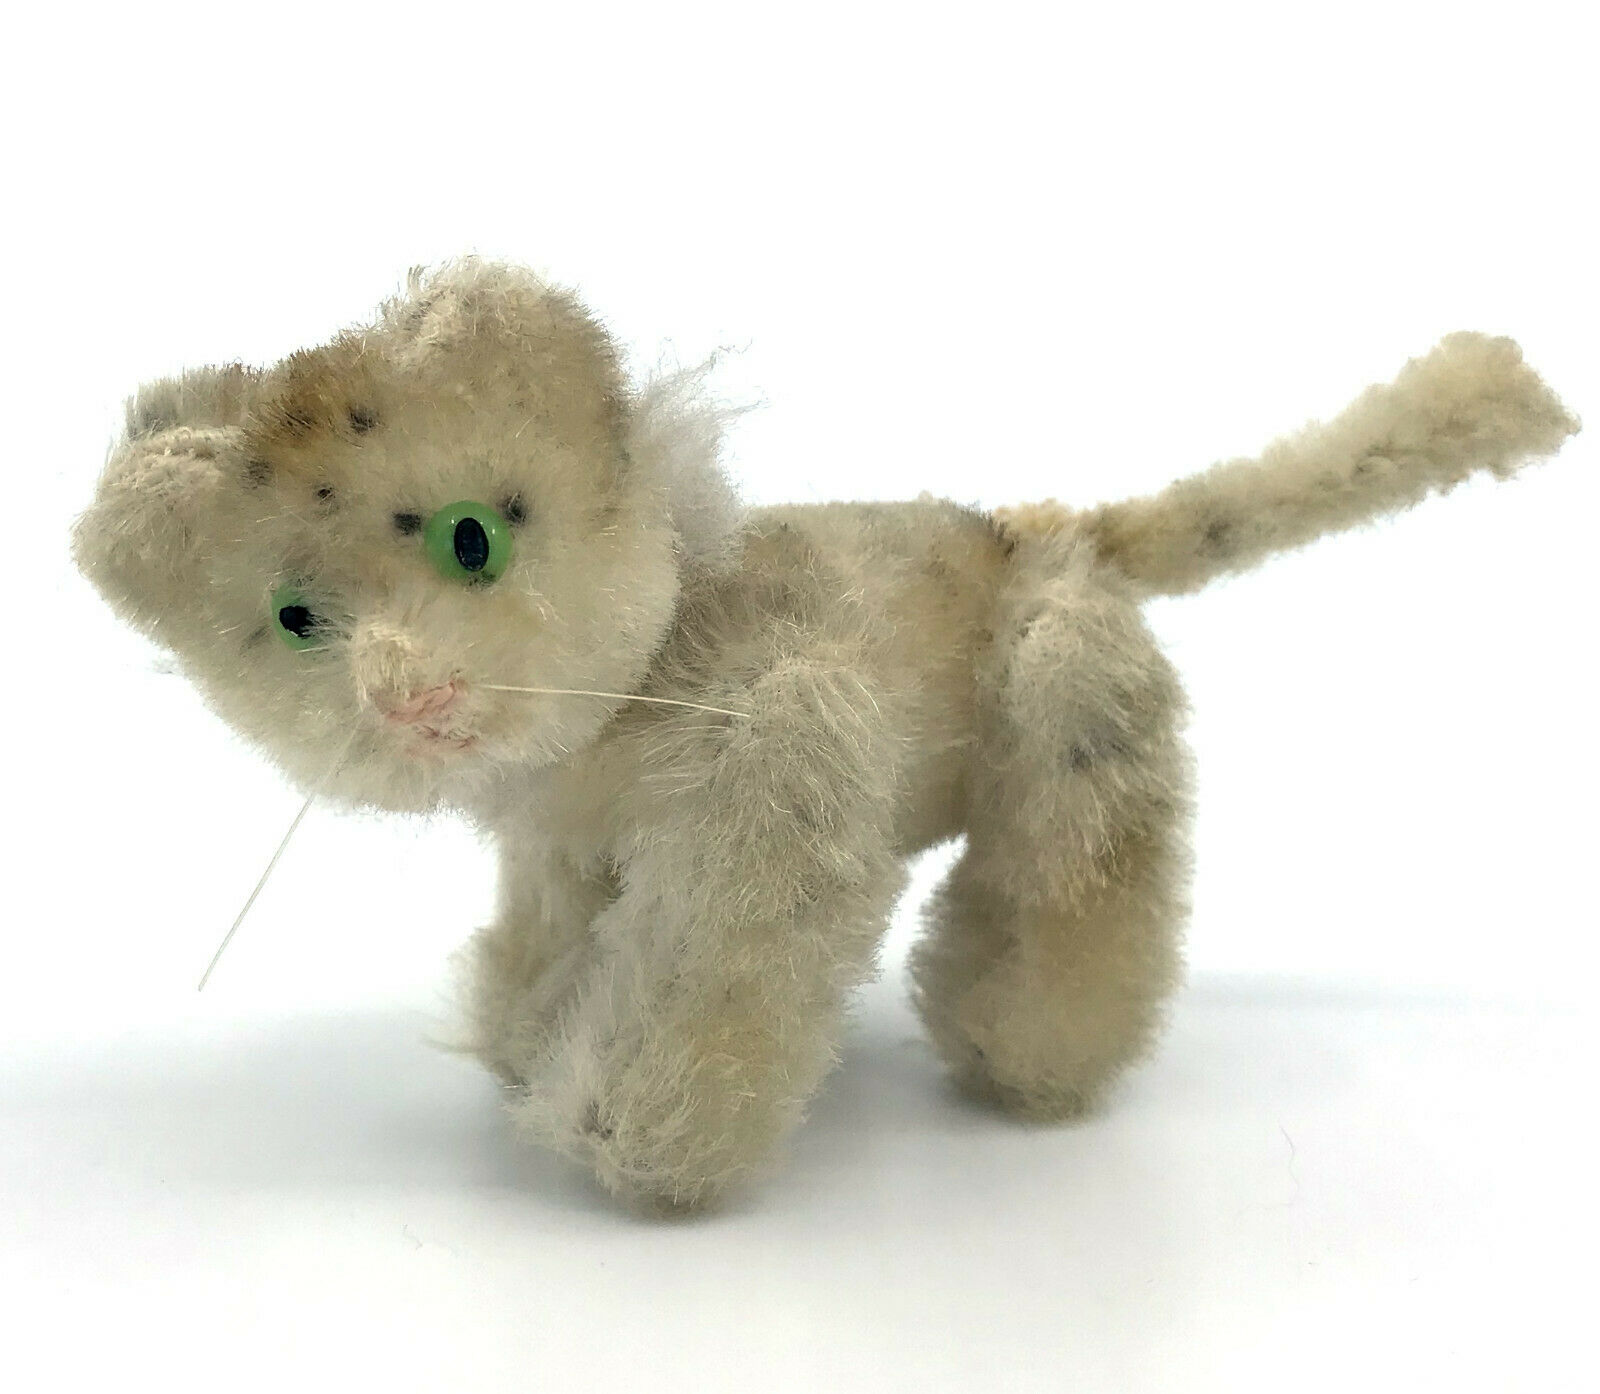 Schuco Noahs Ark Tiger Mohair Plush over Metal 1950s 5cm 2in Jointed Vintage